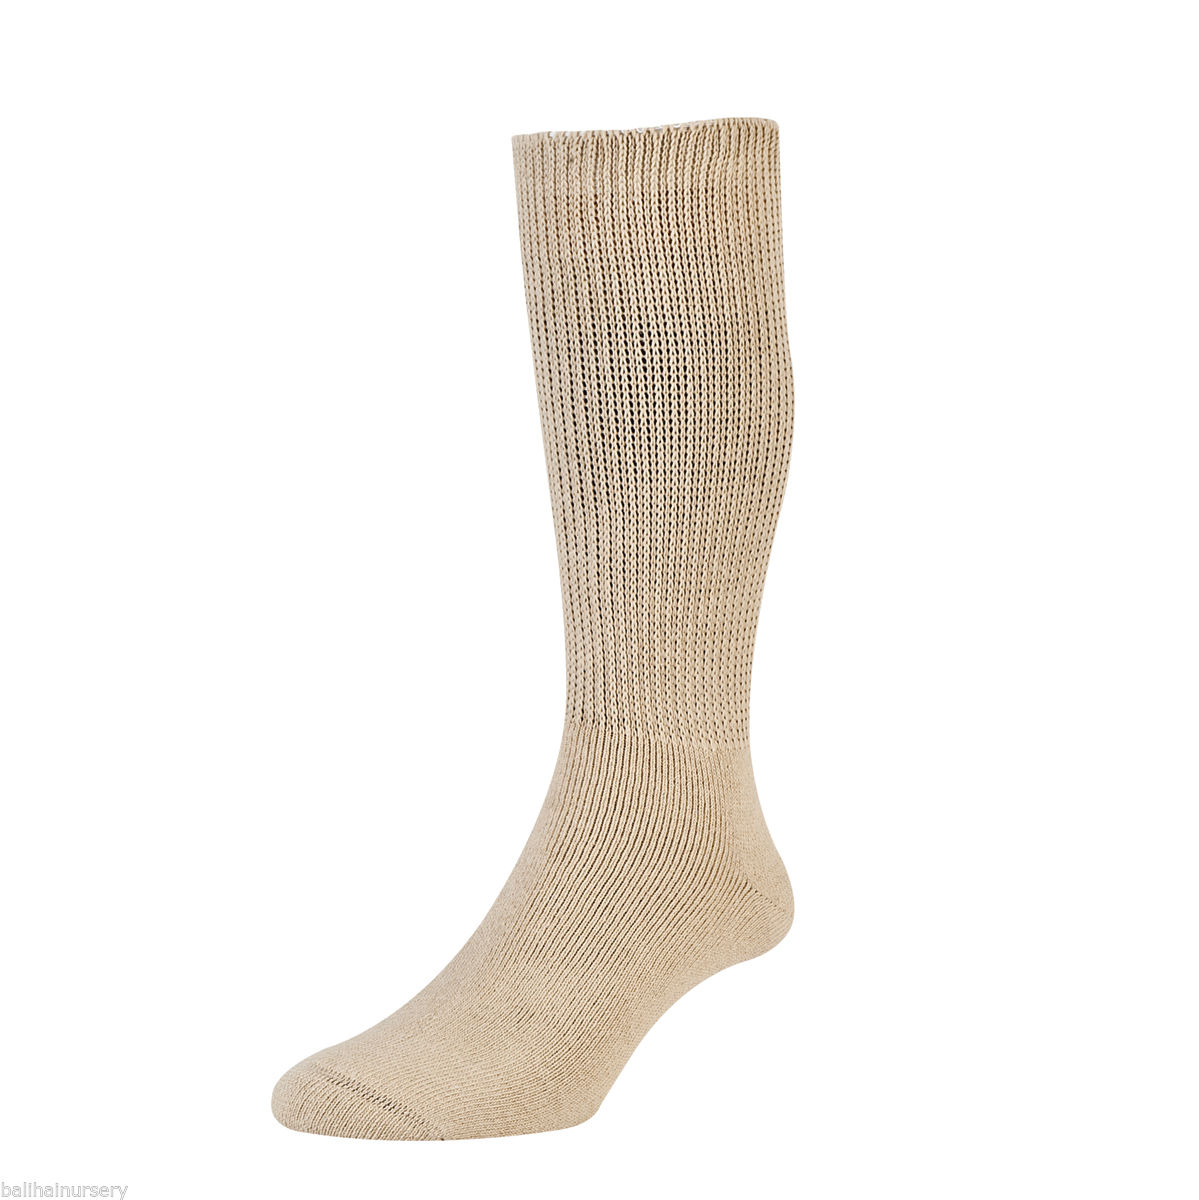 HJ Hall Diabetic Cotton Socks size 4-7 Oatmeal HJ1351